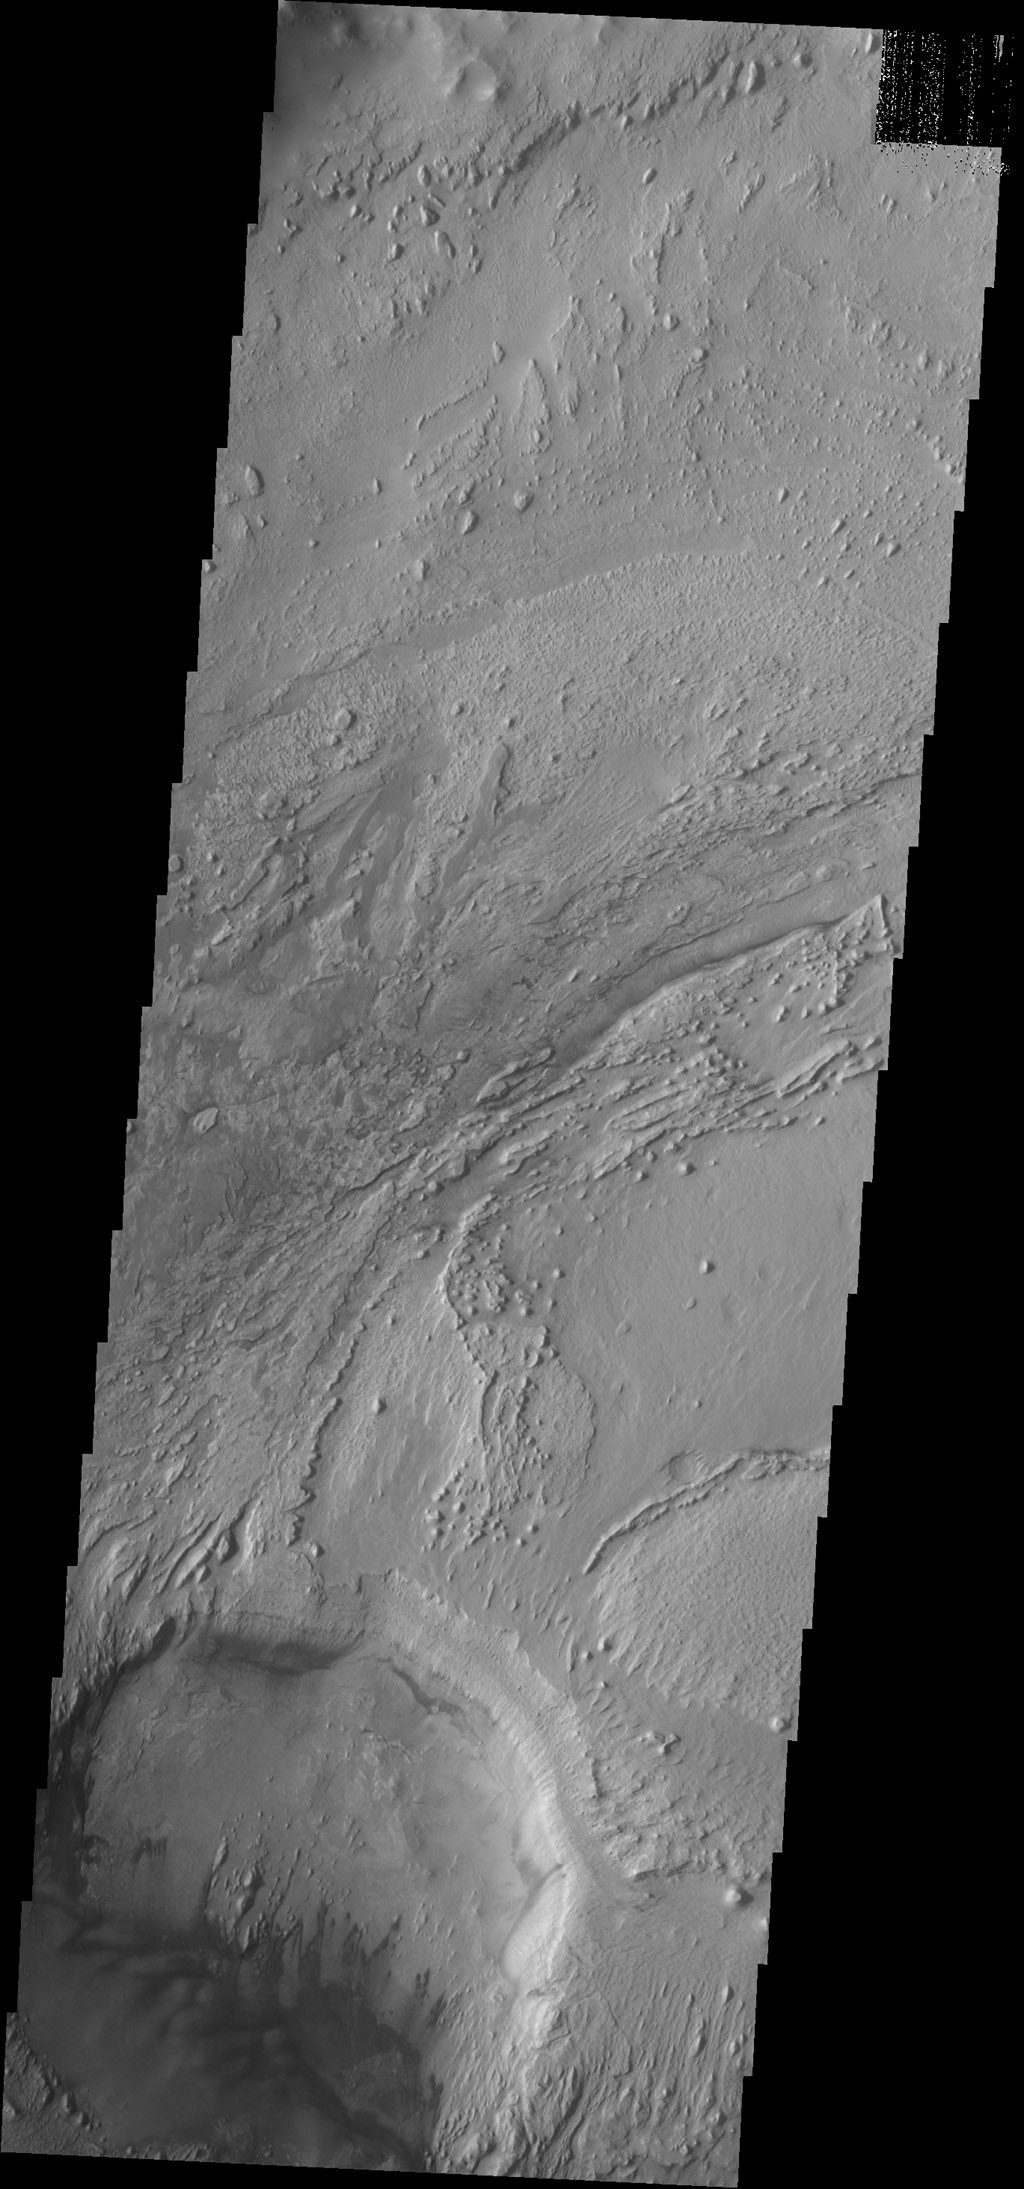 Dark dunes are located on the floor of an unnamed crater inside Firsoff Crater in this image captured by NASA's 2001 Mars Odyssey spacecraft.